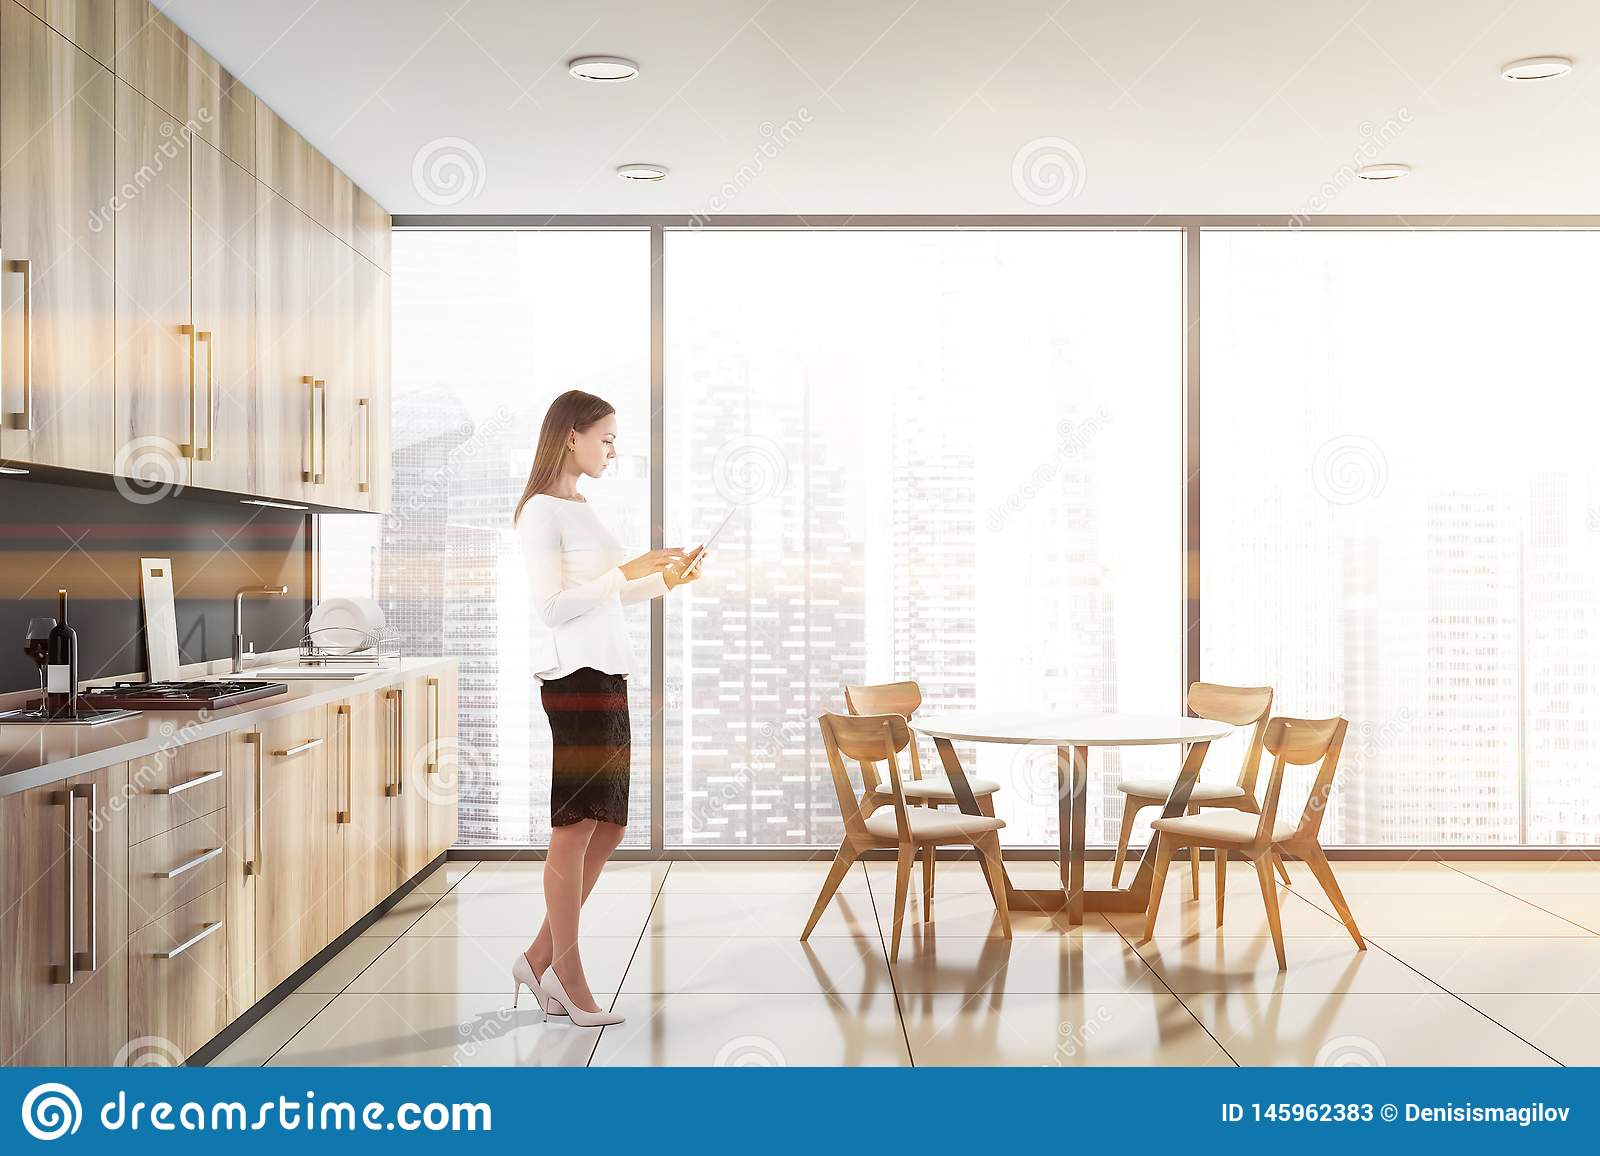 Blonde woman in panoramic kitchen